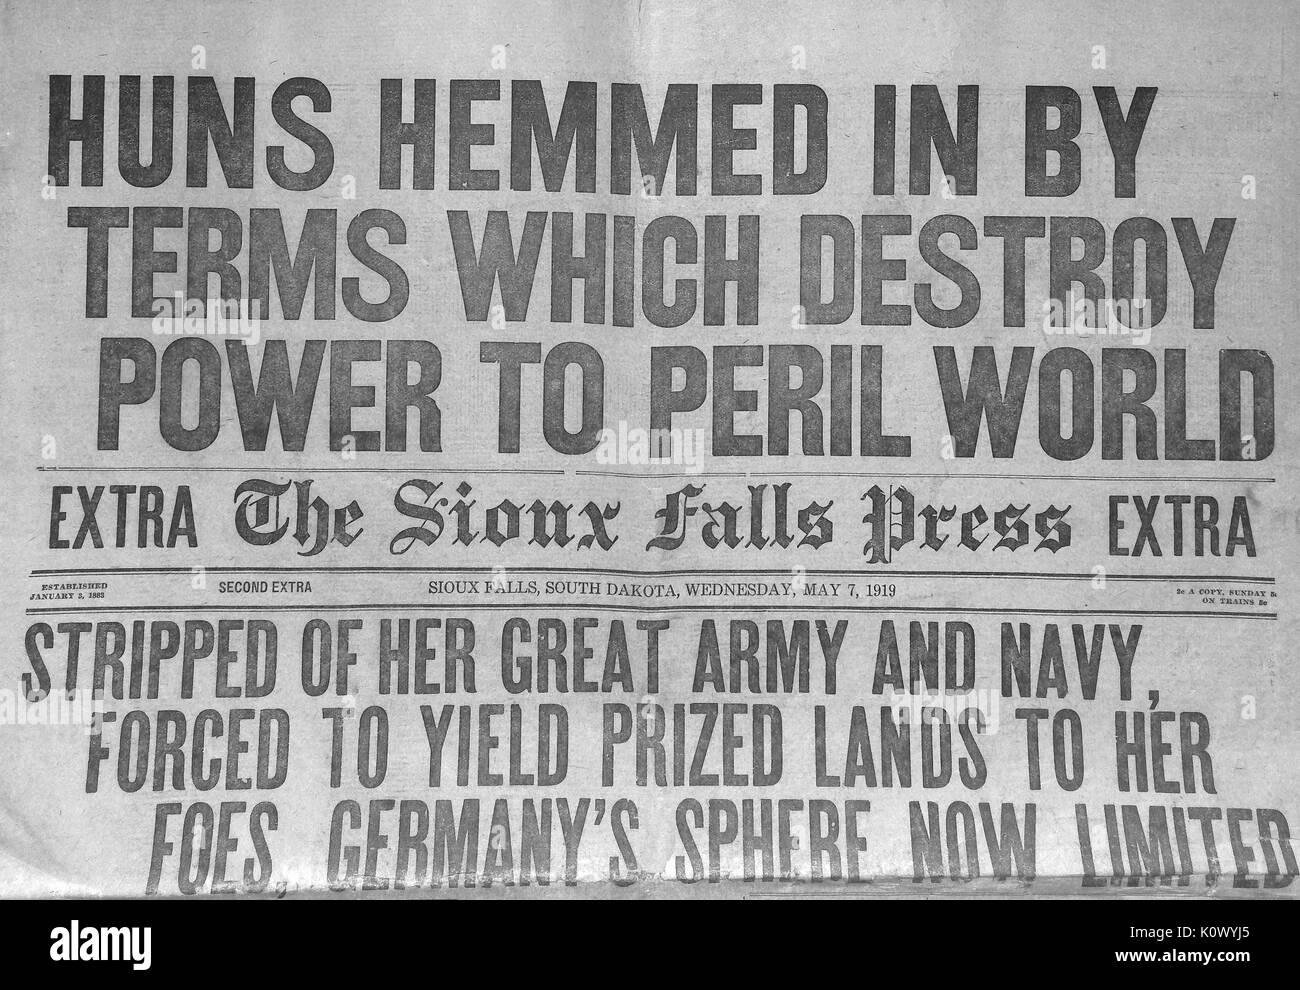 Huns Hemmed in By Terms Which Destroy Power to Peril World, newspaper front page headline for the Sioux Falls Press announcing the surrender of Germany during World War 1, headline continues Stripped of her great army and navy, forced to yield prized lands to her foes, Germanys sphere now limited, 1918. Photo credit Smith Collection/Gado/Getty Images. - Stock Image